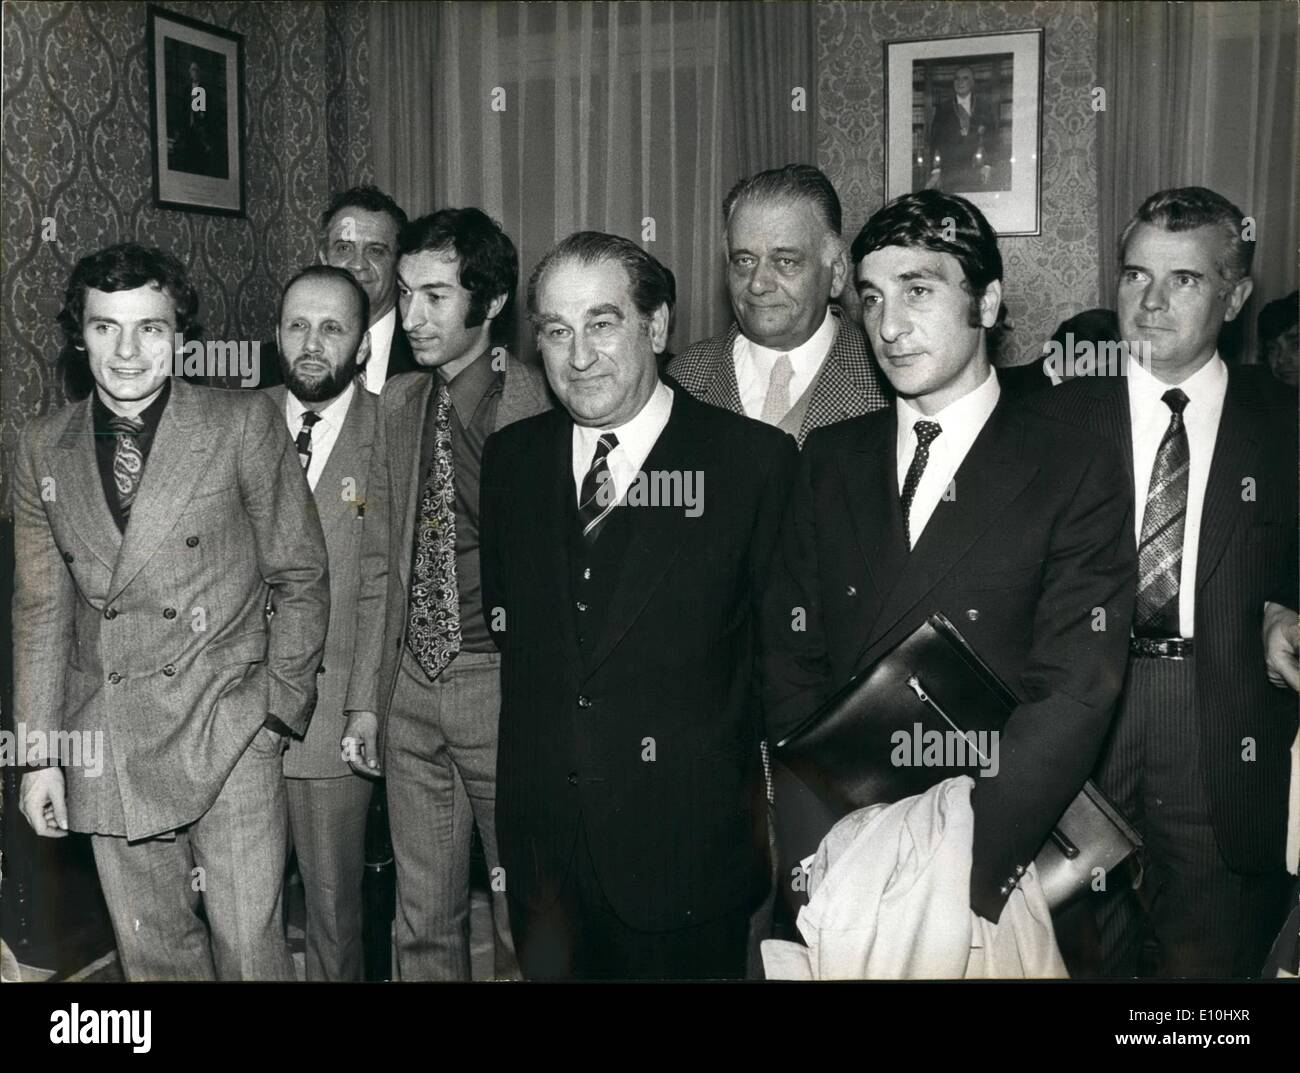 Dec. 12, 1972 - SPORTS AND YOUTH MINISTER AND ARBITER IN FOOTBALL ROW: M. CONITI, THE FRENCH MINISTER OF SPORTS AND YOUTH RECEIVED THE LEADERS OF THE FOOTBALL ASSOCIATION AND SOME OF THE LEADING PROFESSIONAL PLAYERS IN AN ATTEMPT TO RESOLVE THE CRISIS BROUGHT ABOUT BY RECENT INCIDENTS BETWEEN THE LEADERS AND THE PLAYERS. OPS: M. COMITI (CENTRE) PICTURED WITH FROM L TO R. J.C. BRAS, RENE GALLIAN, JACQUES BETRANRD, PIAT (HCAIRLAN OF THE PROFESSIONAL FOOTBALL PLAYERS UNION), JEAN SADOUL AND PAUL ORSATTI. - Stock Image